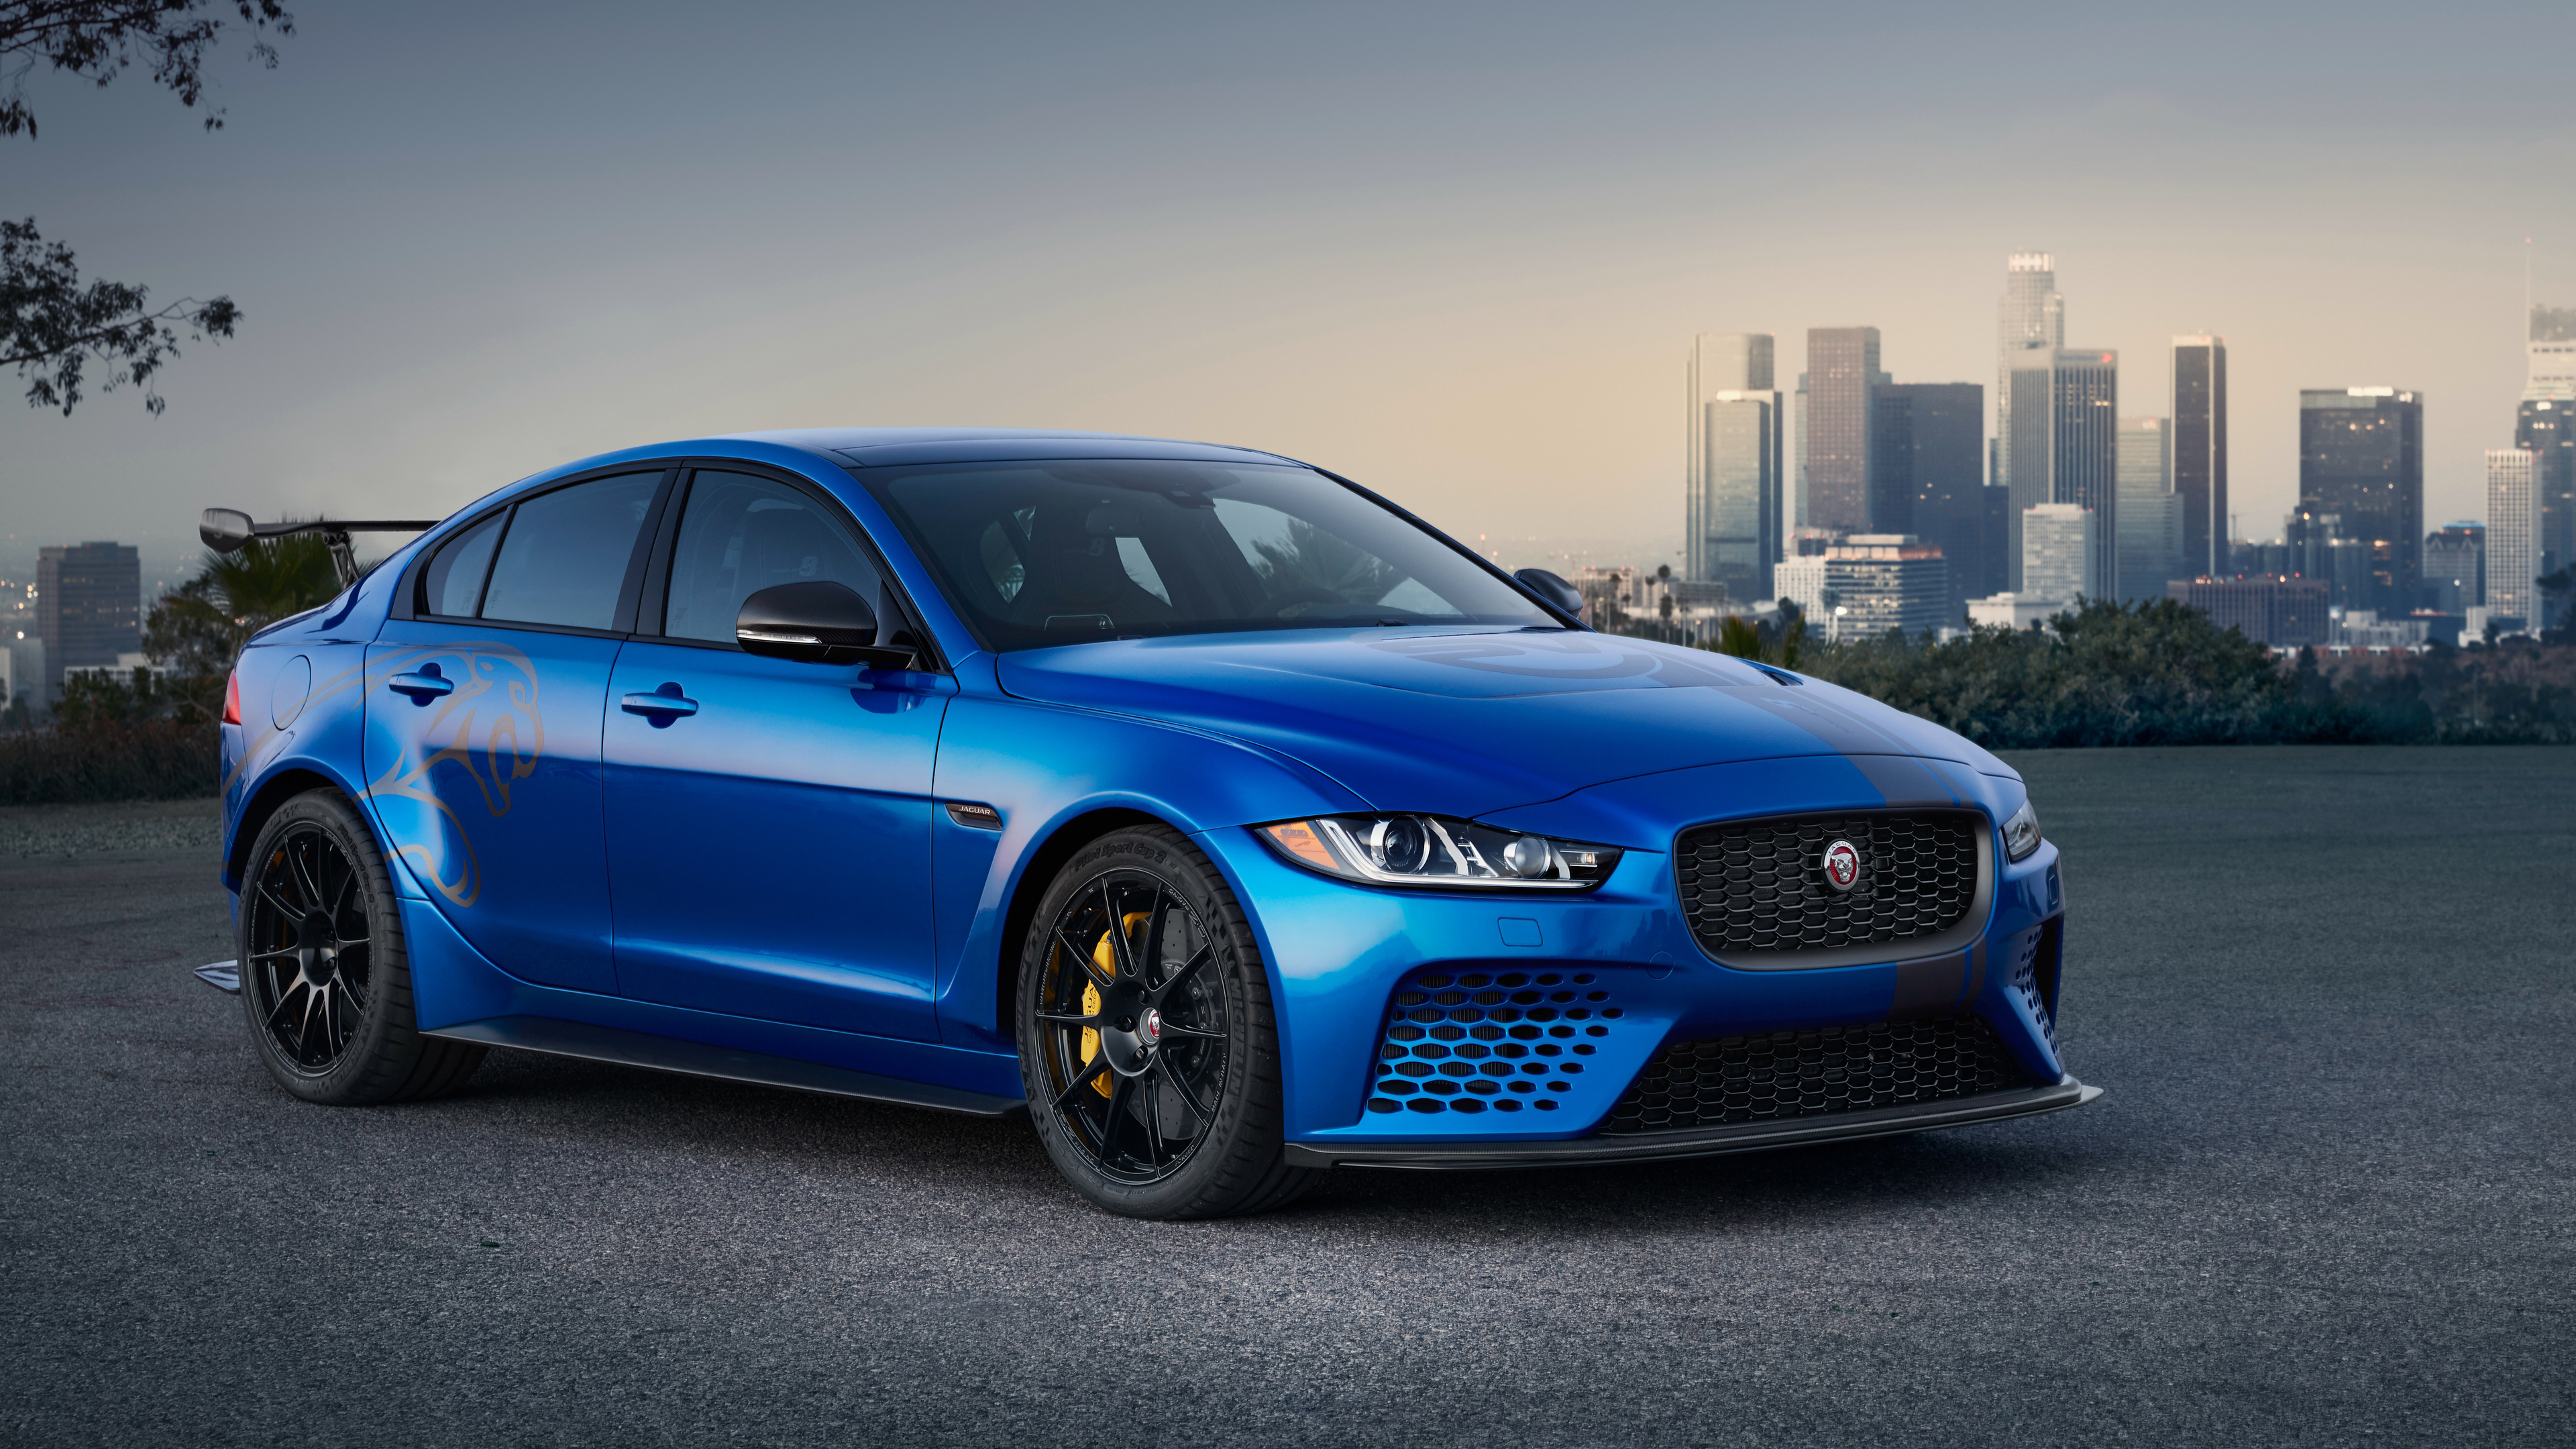 2018 Jaguar XE SV Project 8 4K846371631 - 2018 Jaguar XE SV Project 8 4K - Project, Jaguar, 458, 2018